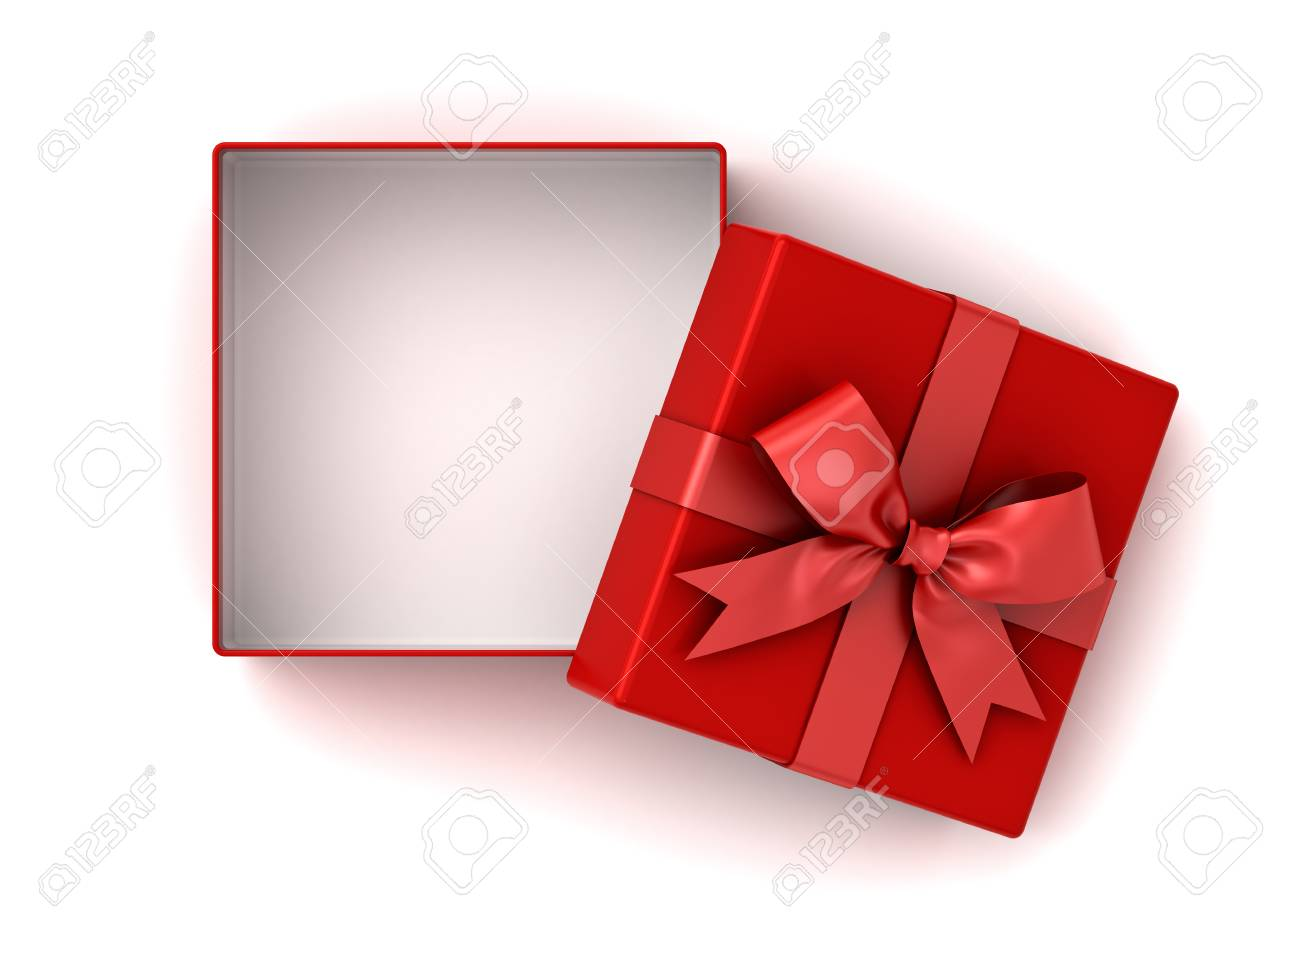 Gift box with bow Round Open Red Gift Box Red Present Box With Red Ribbon Bow And Empty Space In 123rfcom Open Red Gift Box Red Present Box With Red Ribbon Bow And Empty